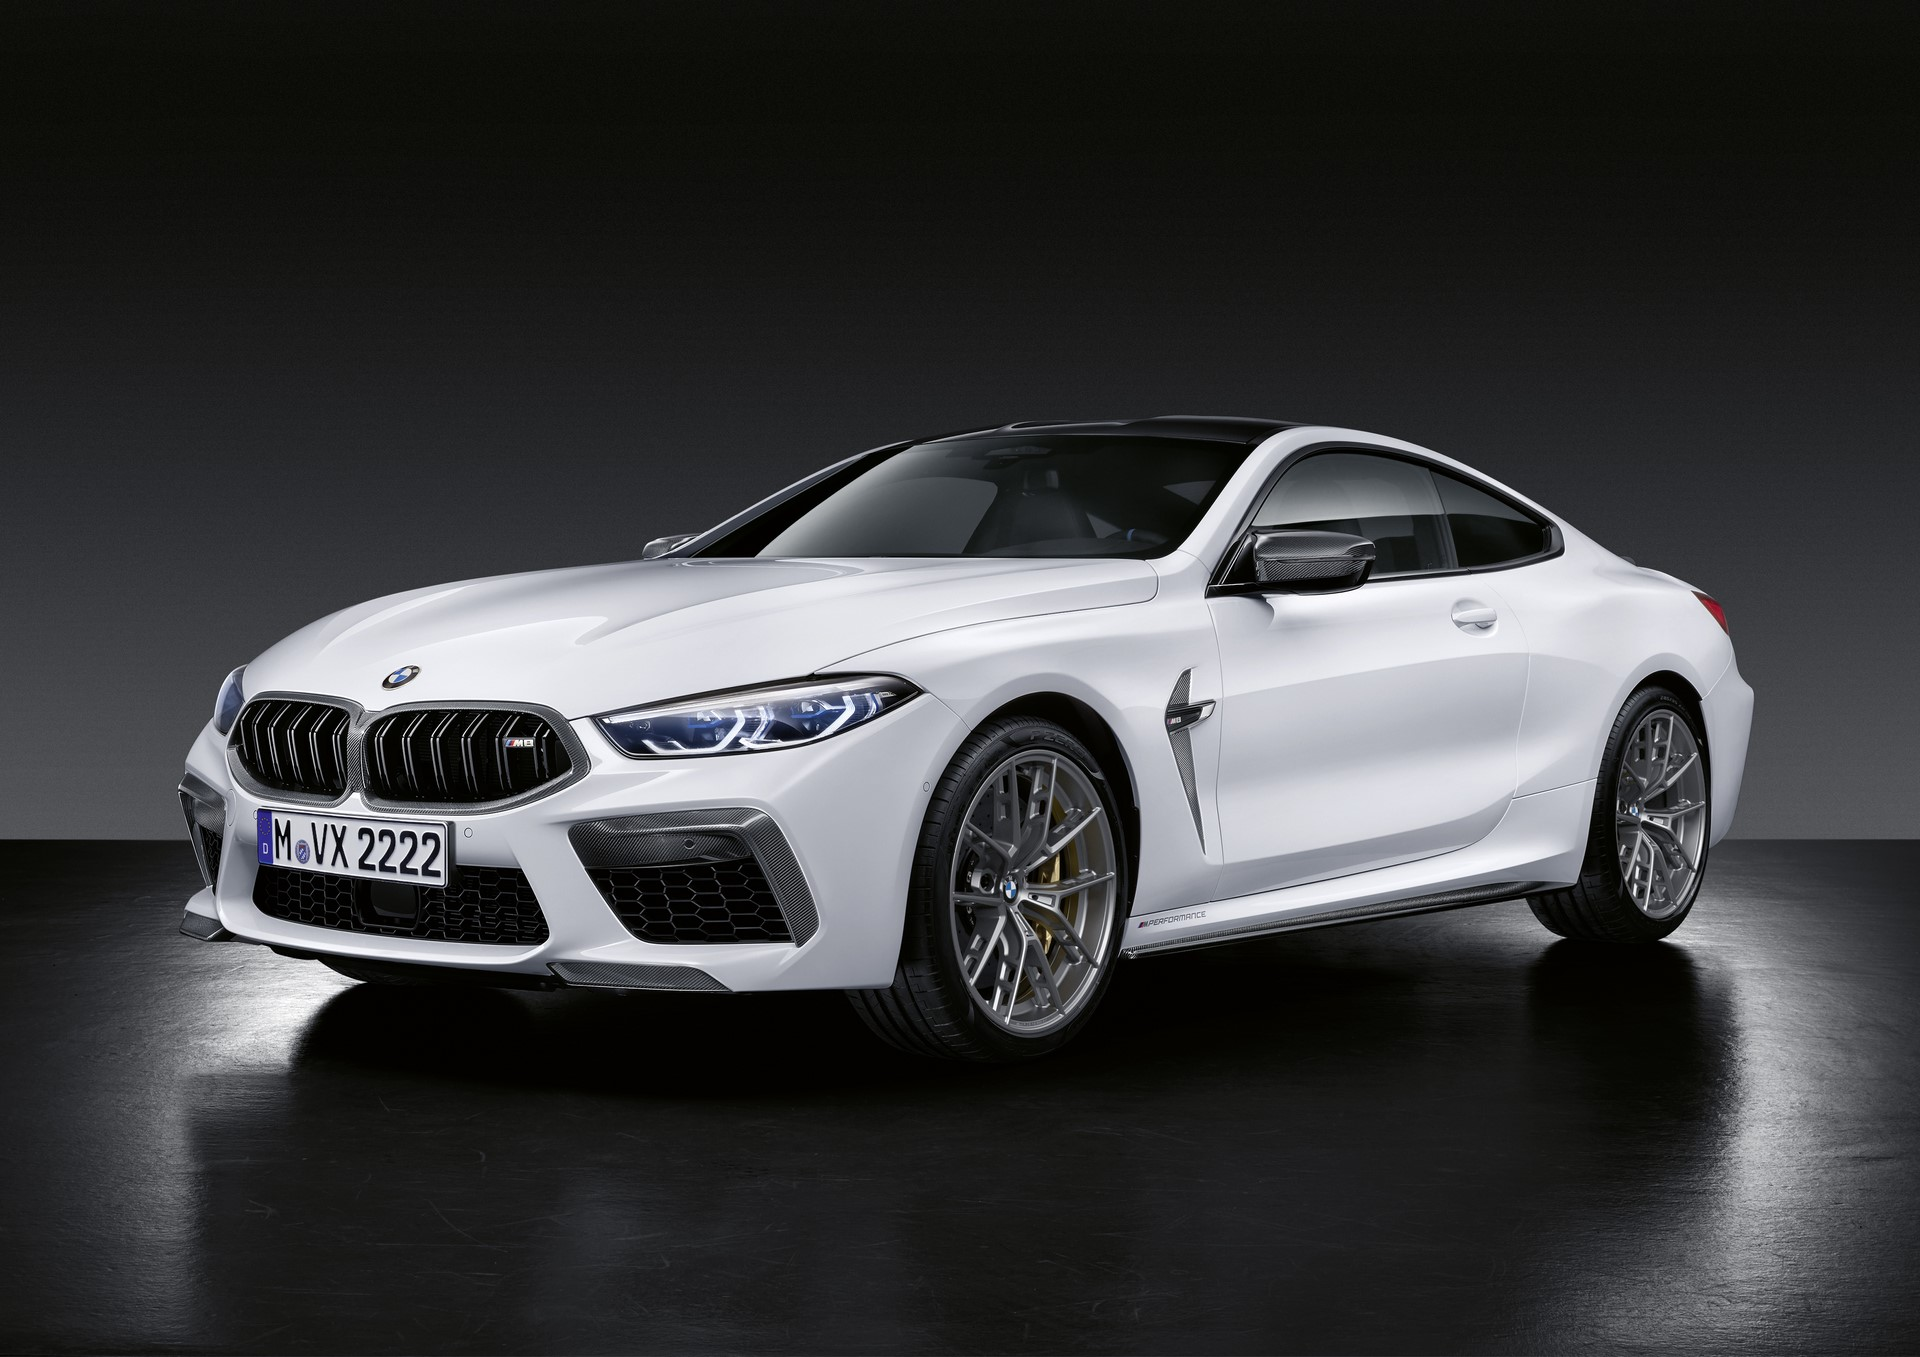 BMW-M8-coupe-with-M-Performance-Parts-1